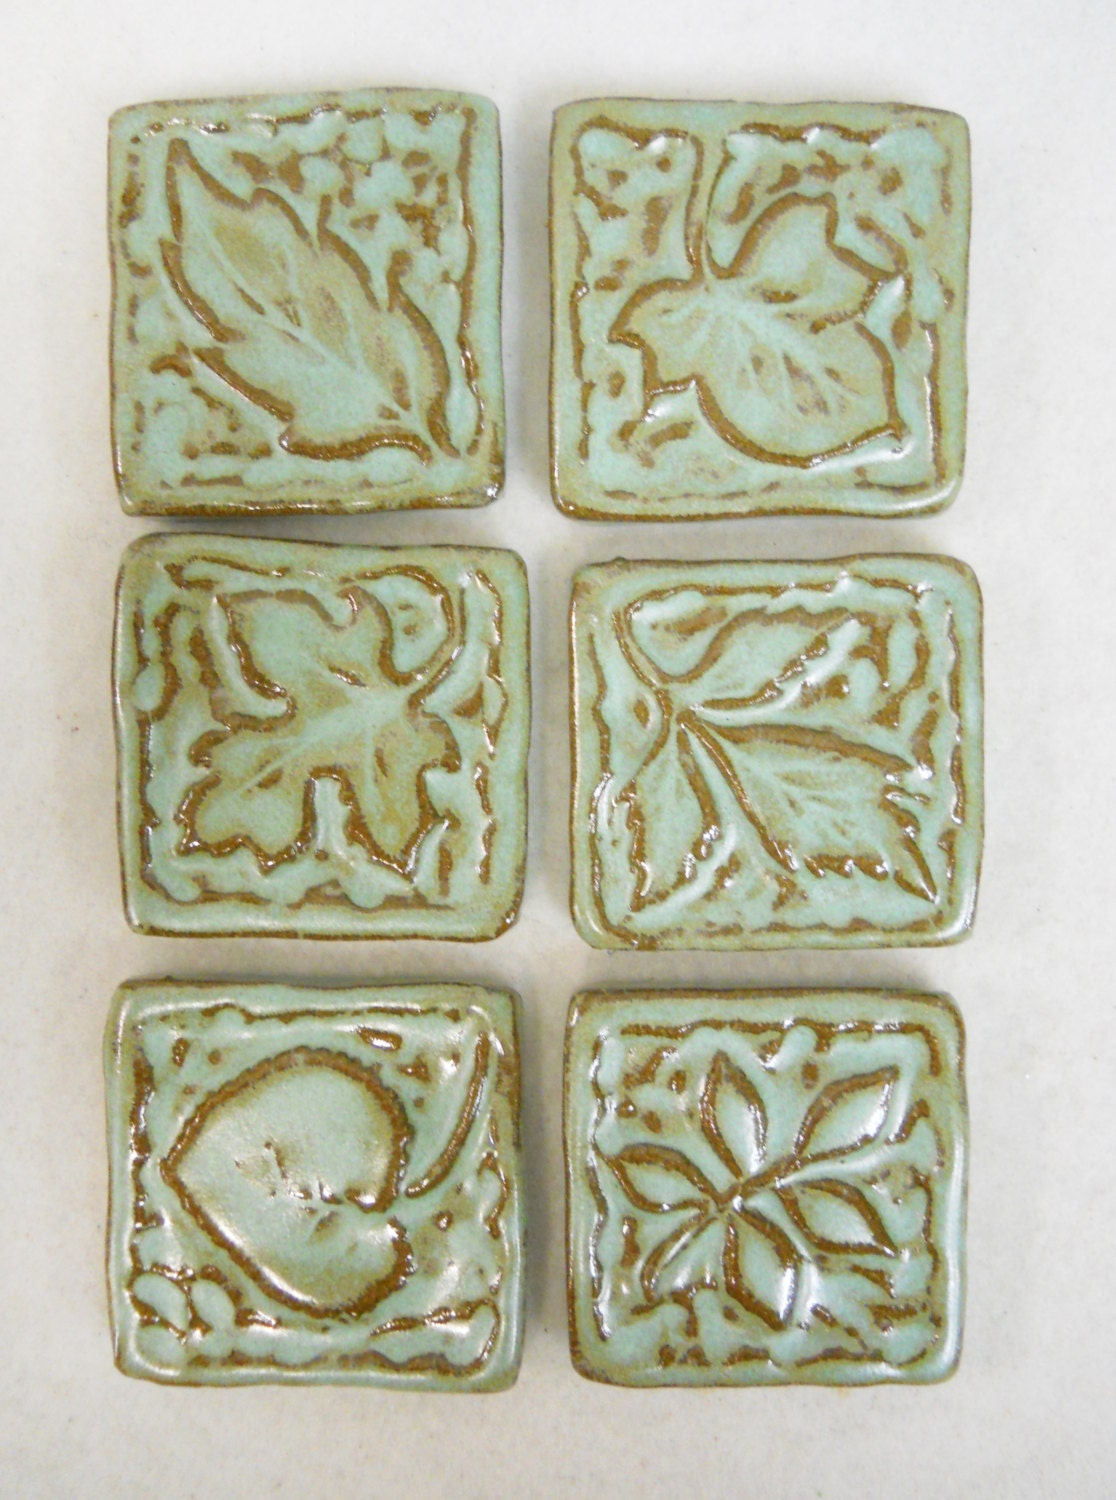 Handmade Decorative Ceramic Tiles Leaf Patterns Set Of 6